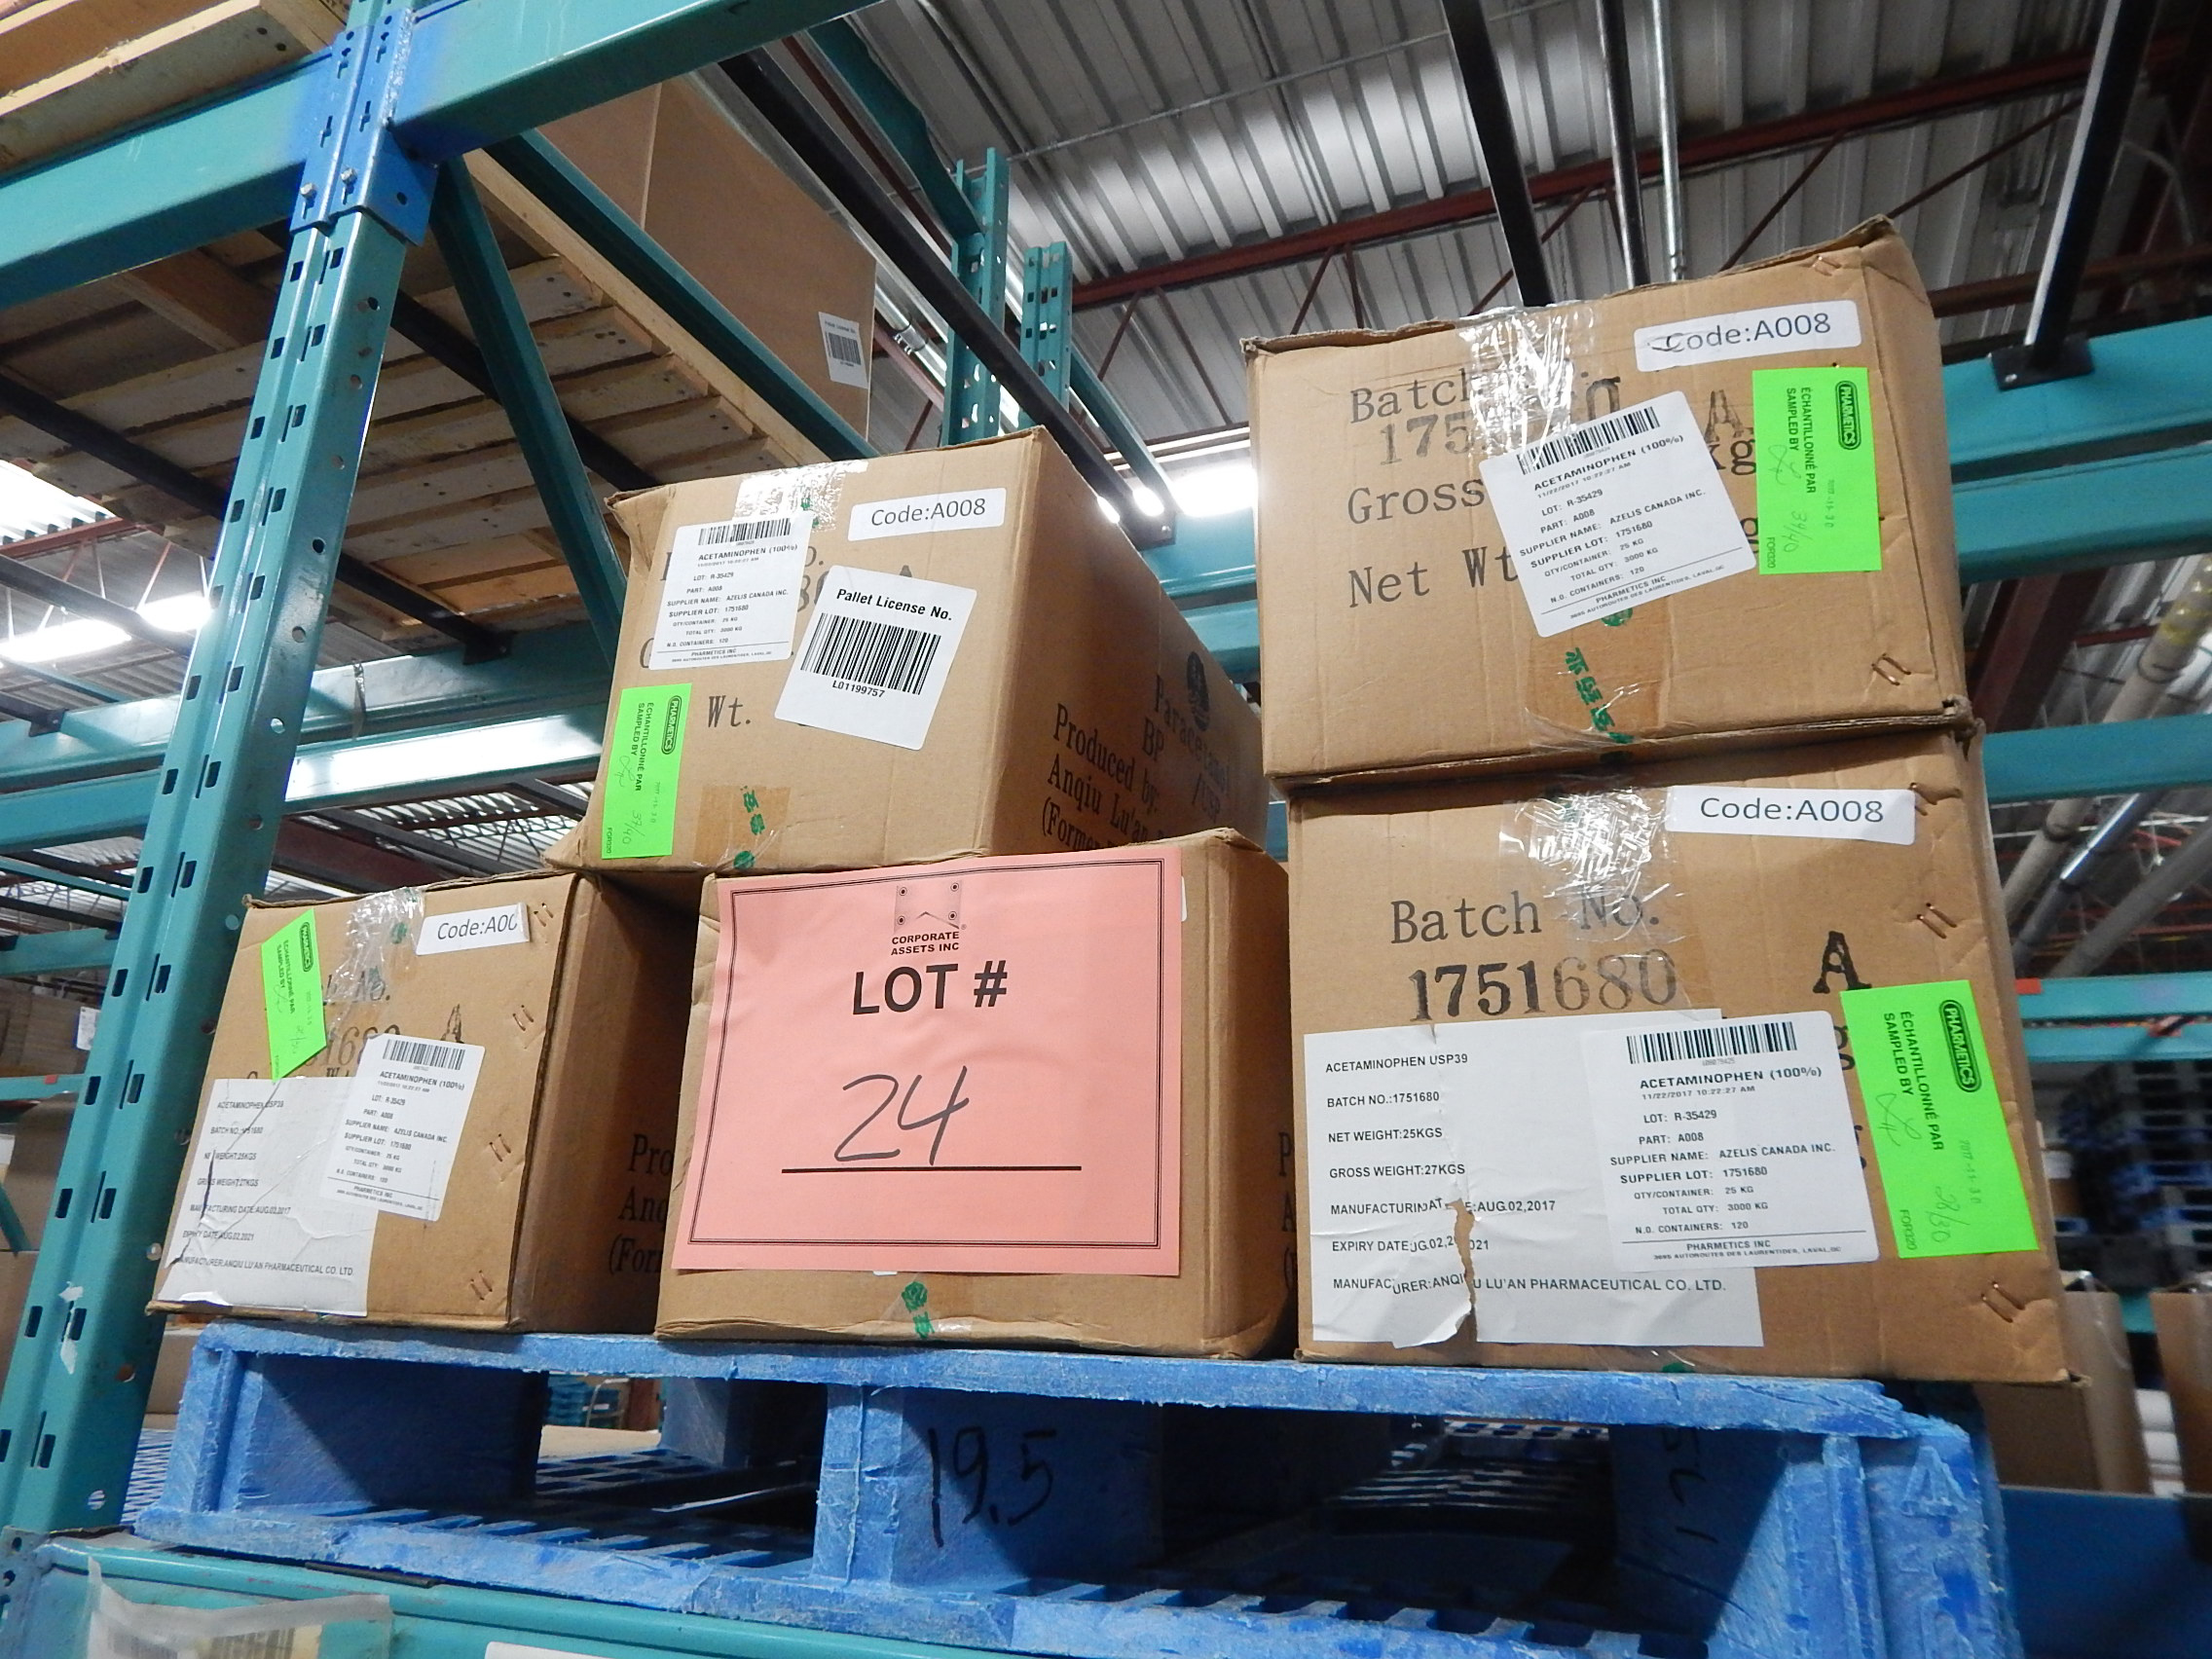 Lot 24 - LOT/ SKID WITH CONTENTS CONSISTING OF BOXES OF ACETOMINOPHEN